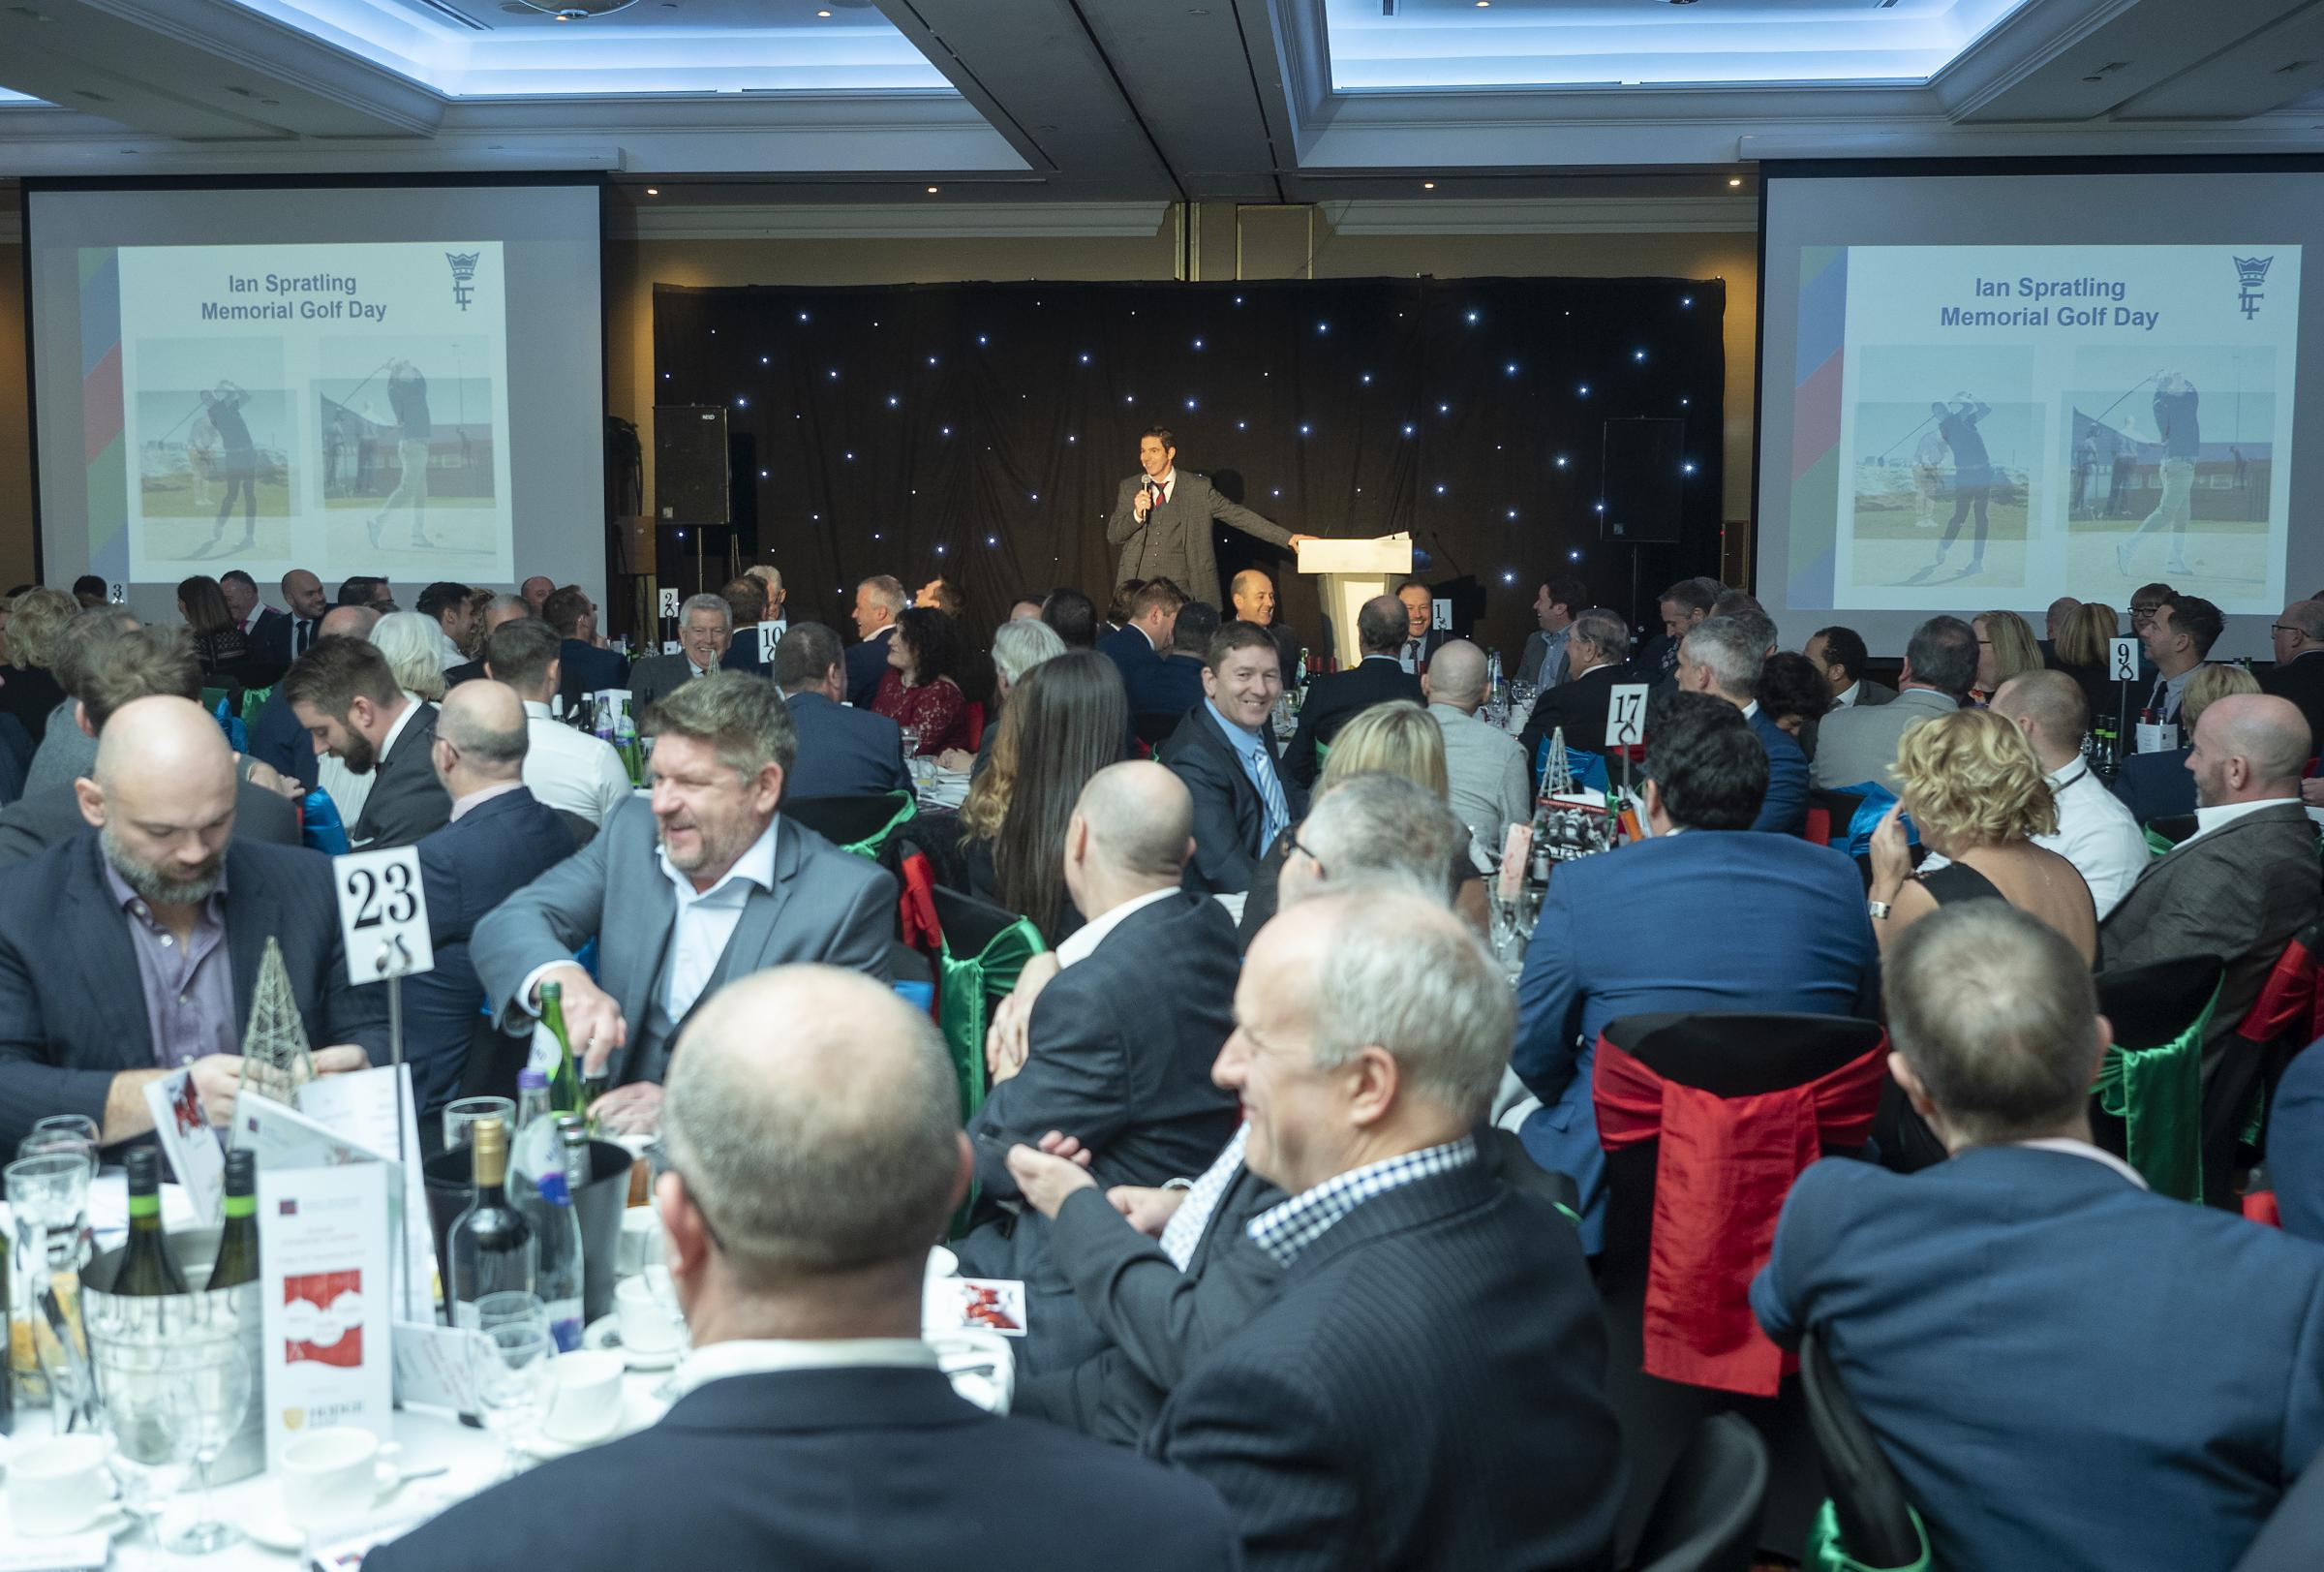 The Lord's Taverners Wales Annual Christmas Lunches